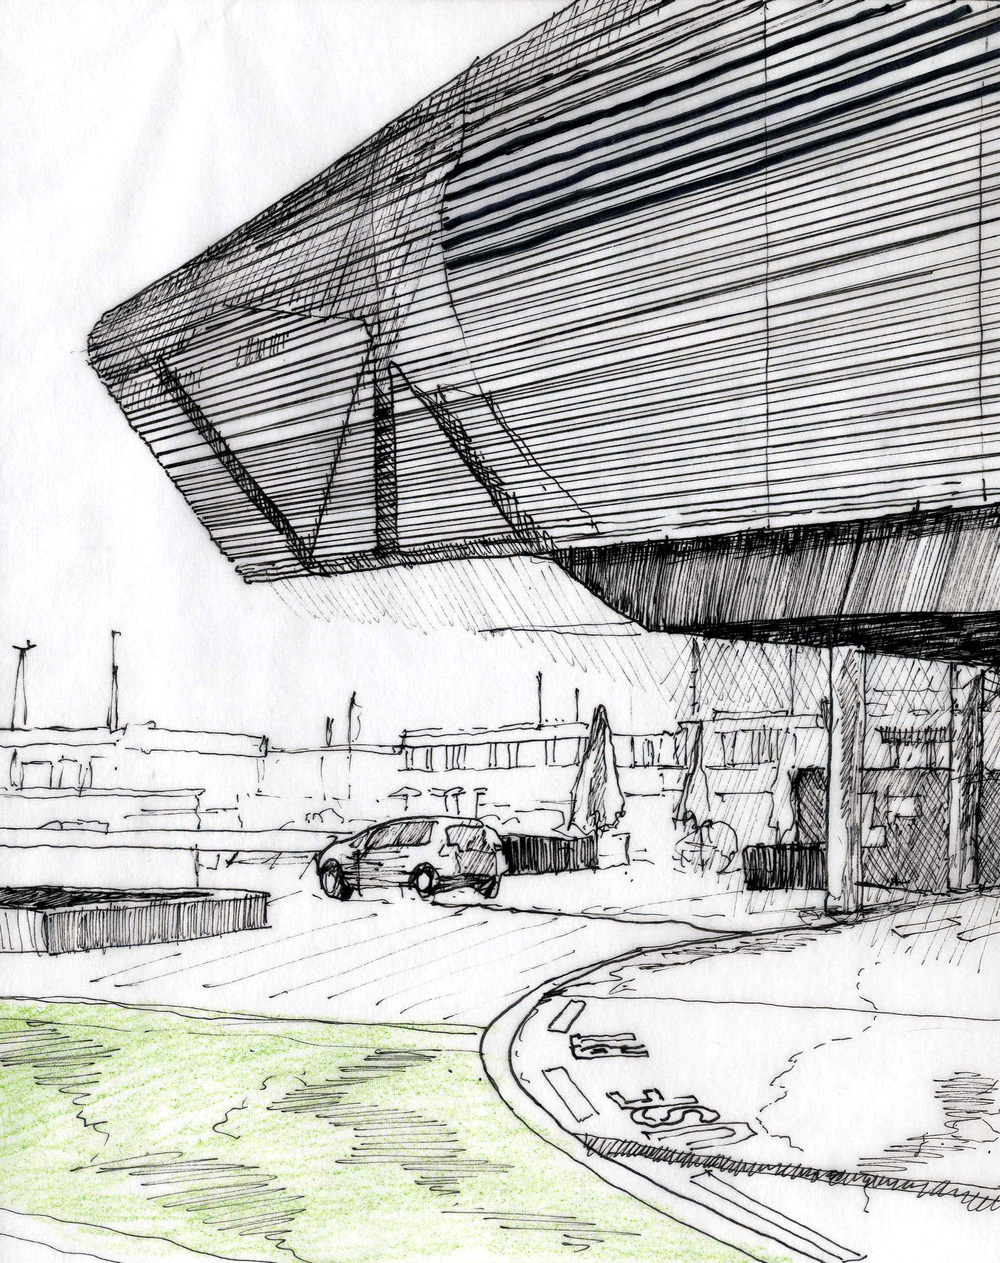 MunichBusStationSketch.jpg